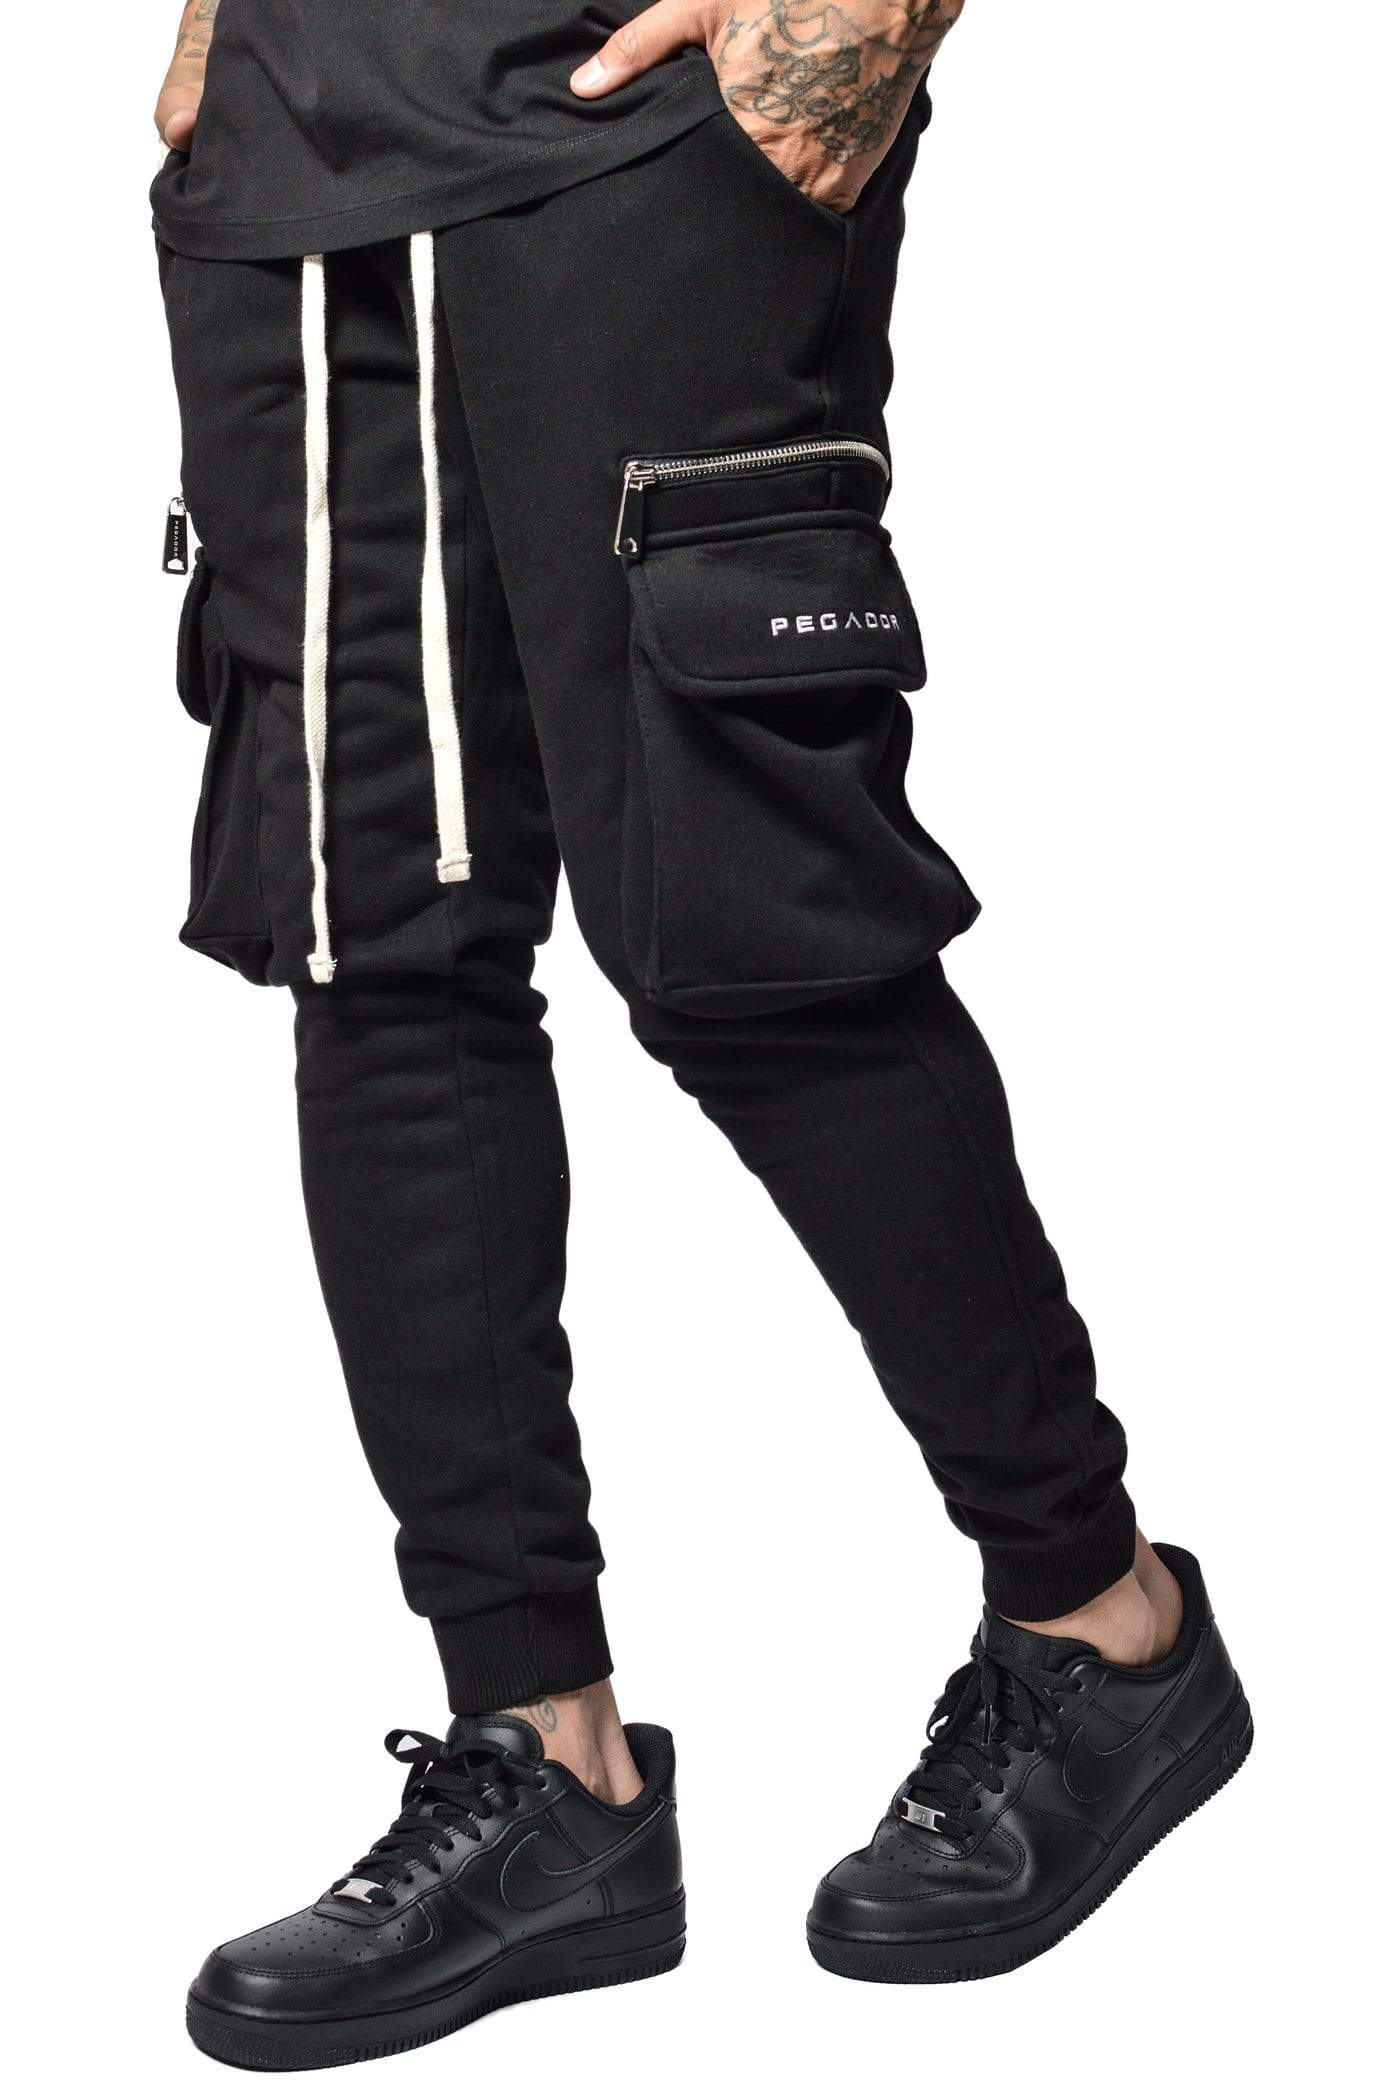 Vaio Cargo Pants Black - PEGADOR - Dominate the Hype